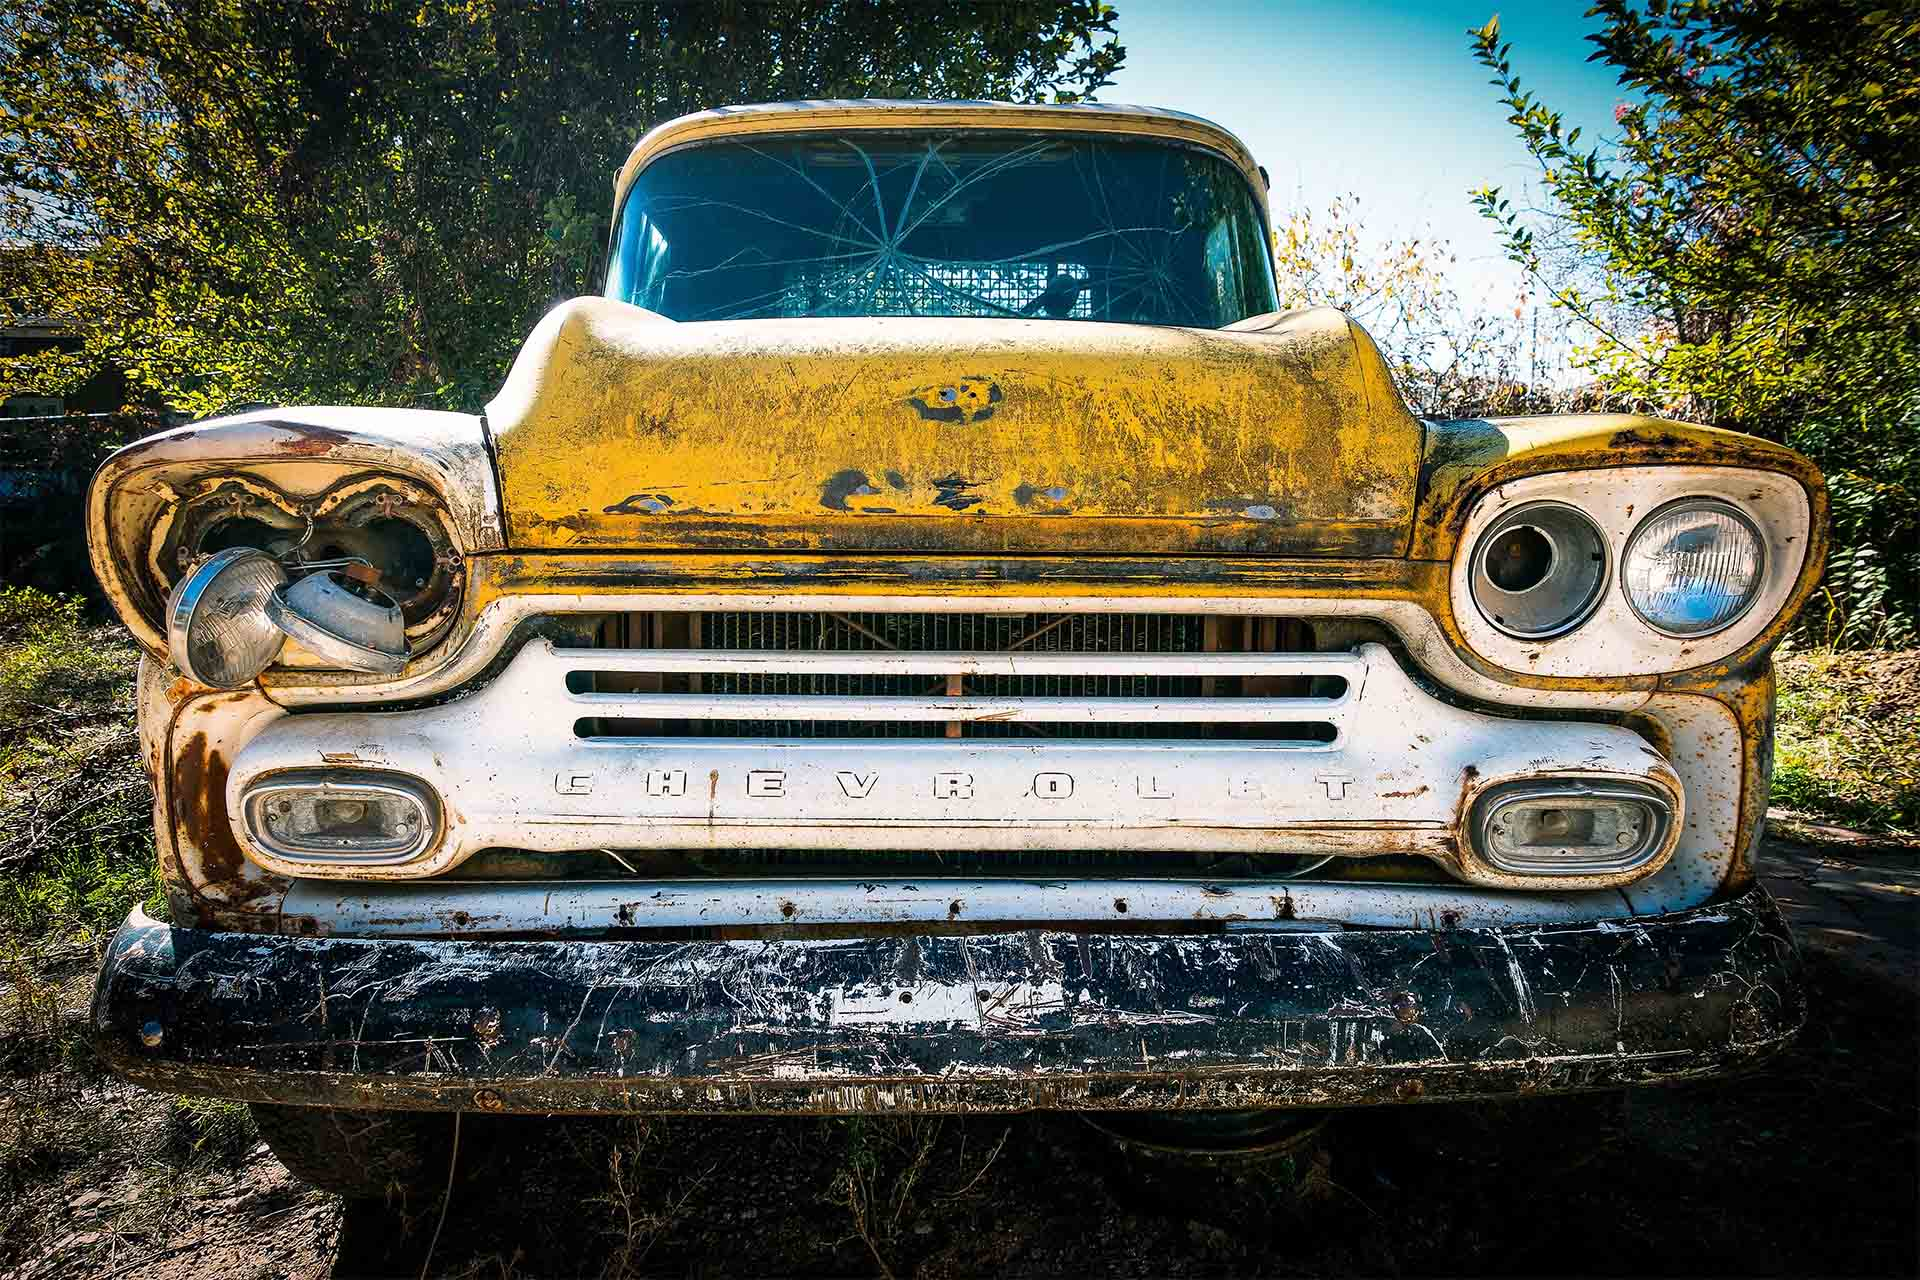 Inspect a Used Car We buy junk cars, Old Junk Classic truck, Free Online Price Quote